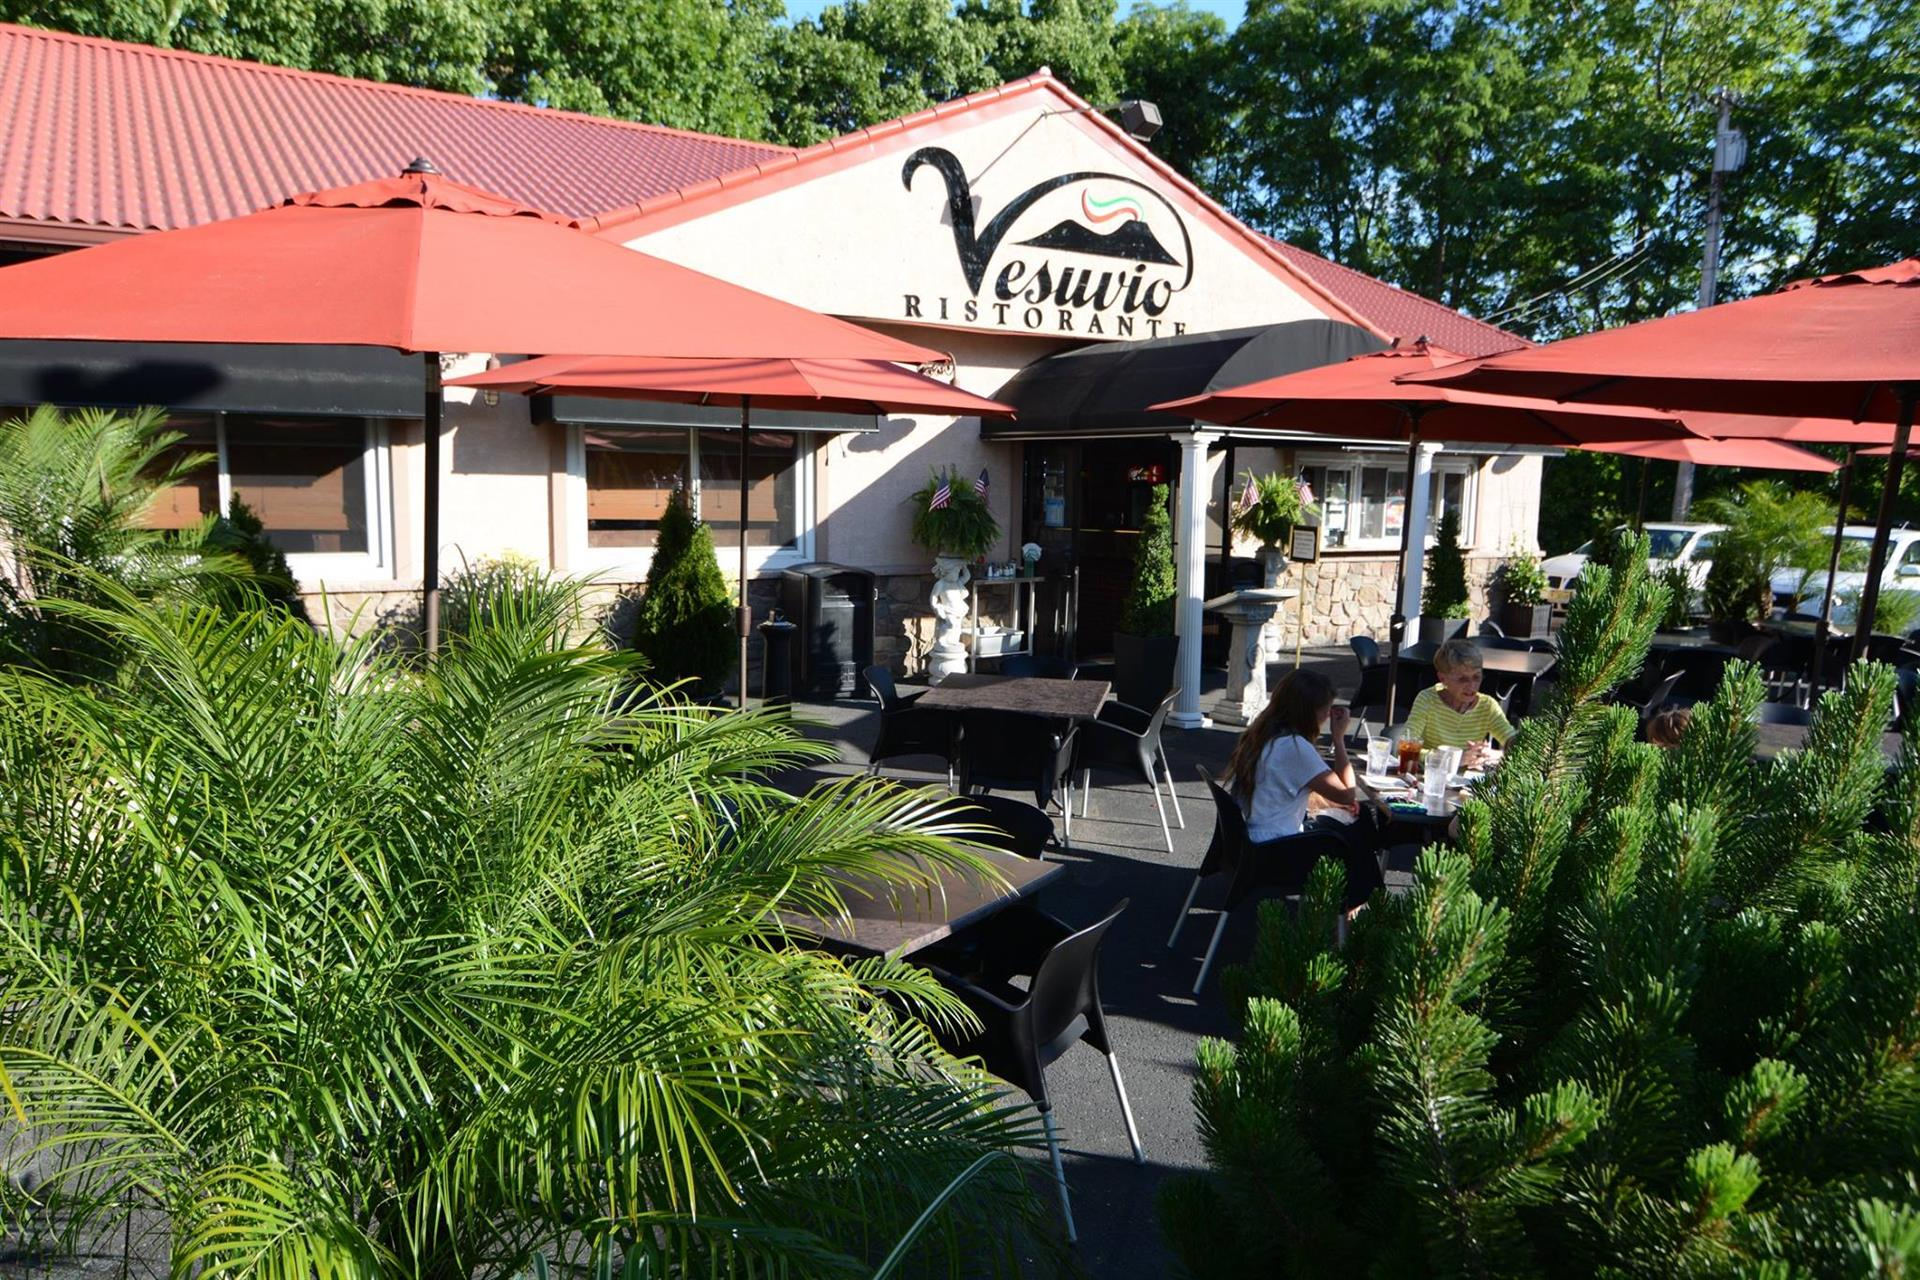 outside of Vesuvio Ristorante - view of the entrance with tables and umbrellas for shade